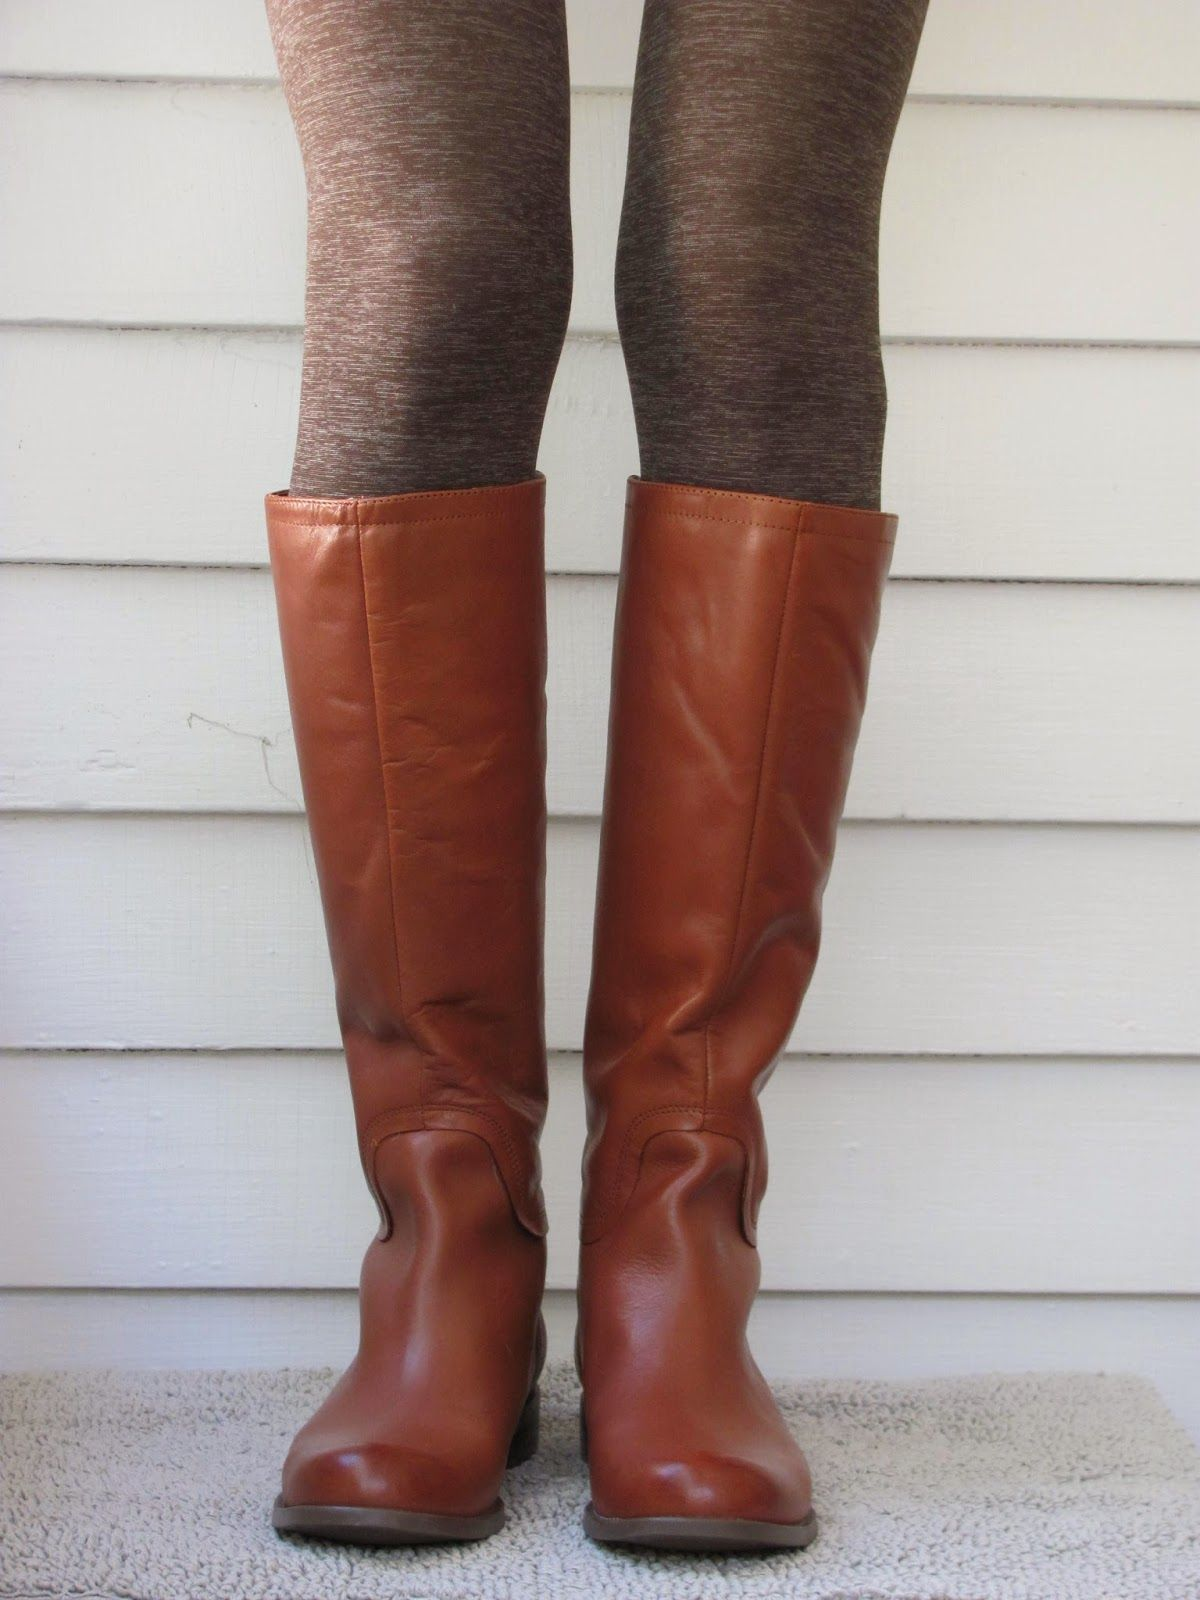 Howdy Slim! Riding Boots for Thin Calves | Other Stuff | Pinterest ...